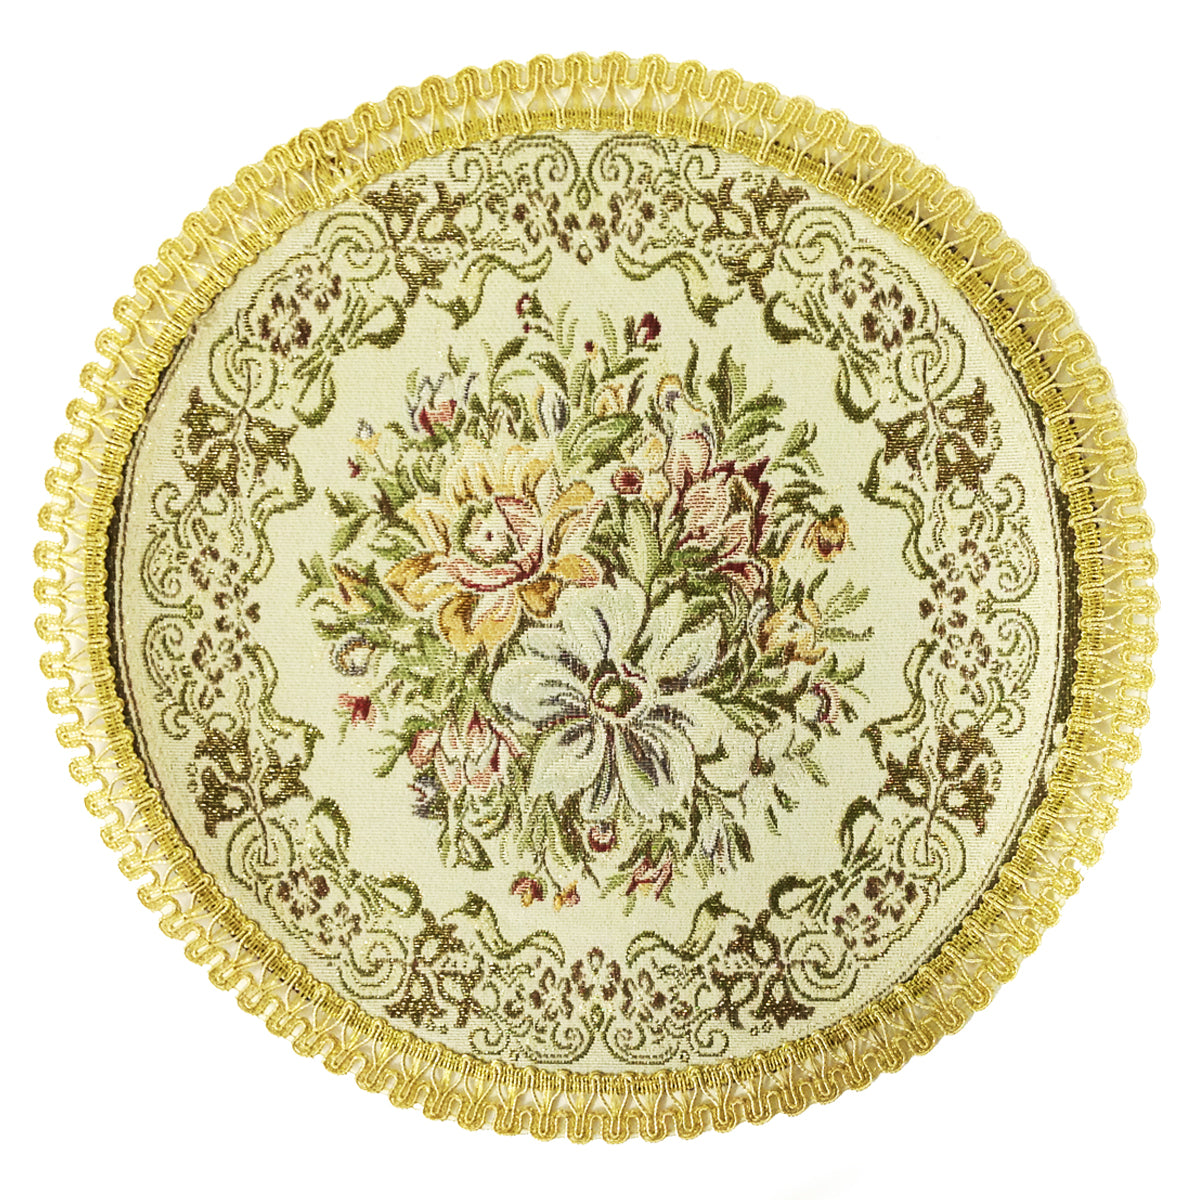 Wrapables? Round Vintage Floral Placemat with Gold Embroidery (Set of 2)